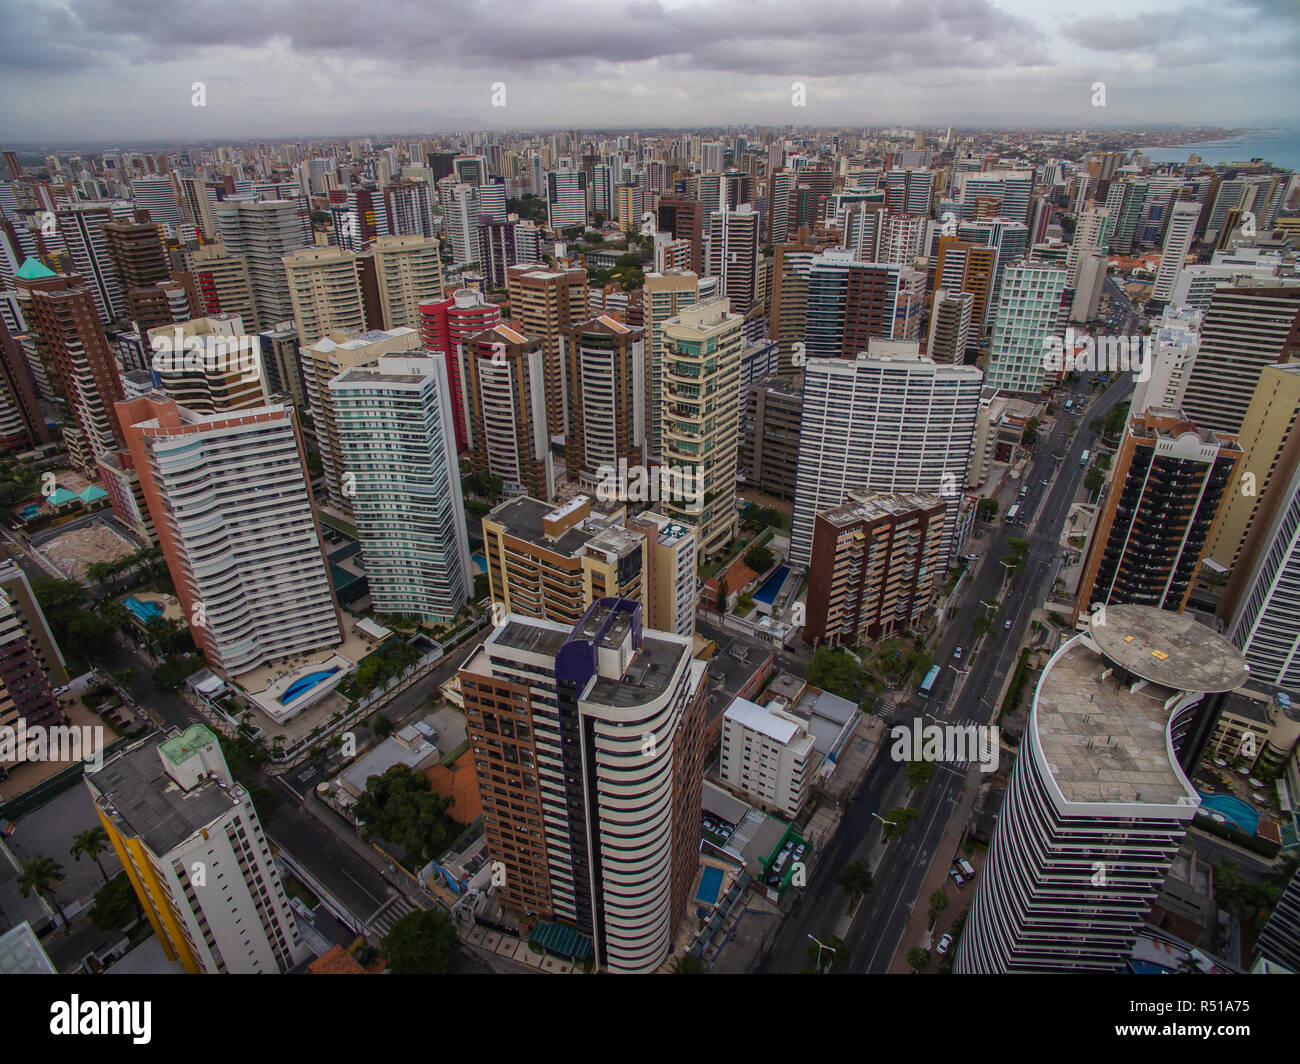 Aeria view of the city of Fortaleza, Ceará, Brazil South America. Stock Photo